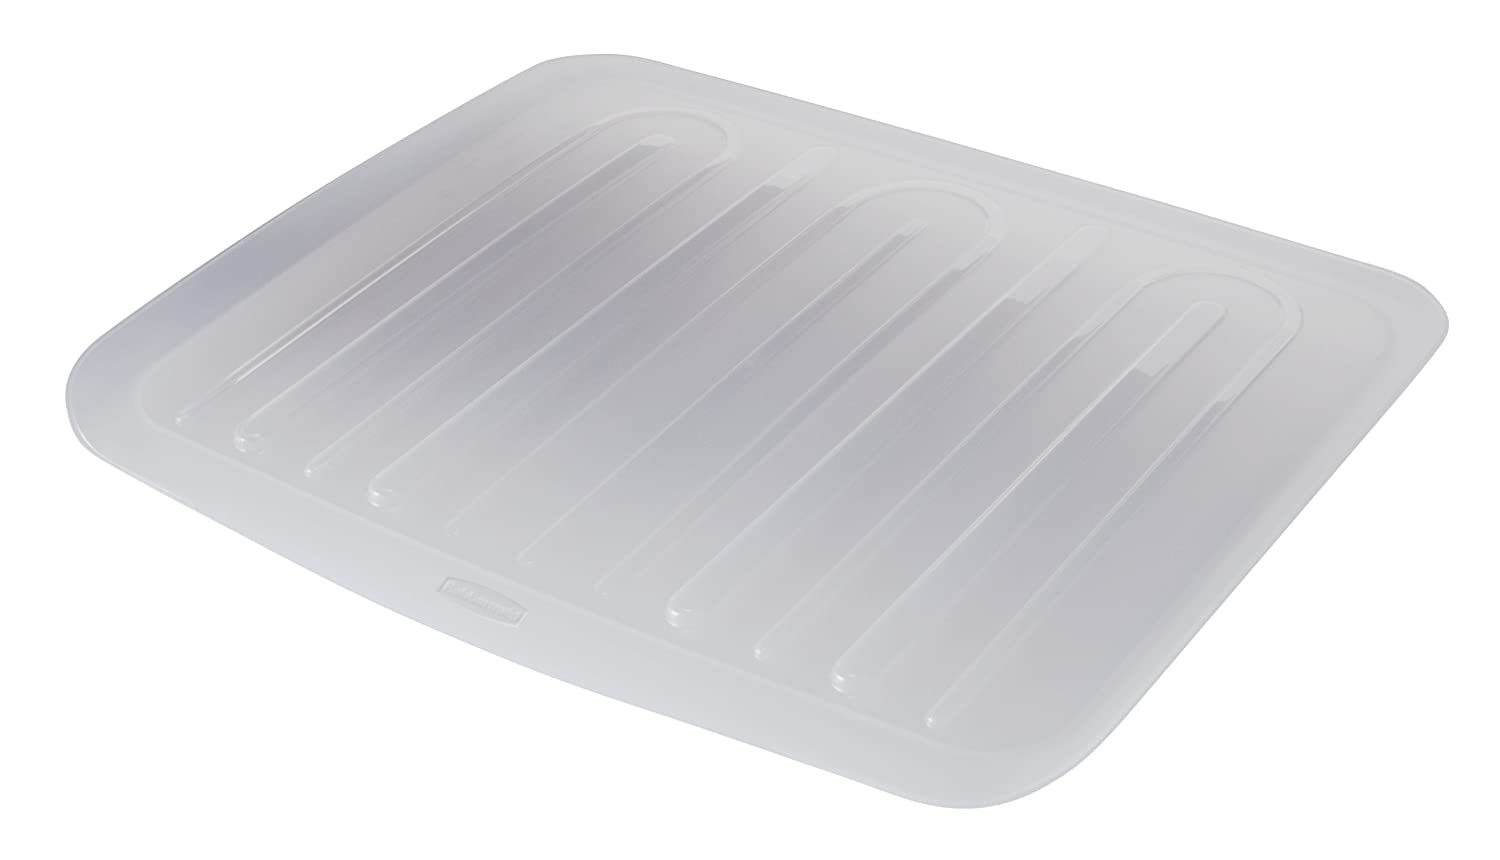 Rubbermaid Food Products FG1182MACLR Rubbermaid Antimicrobial Drain Board Large, Clear